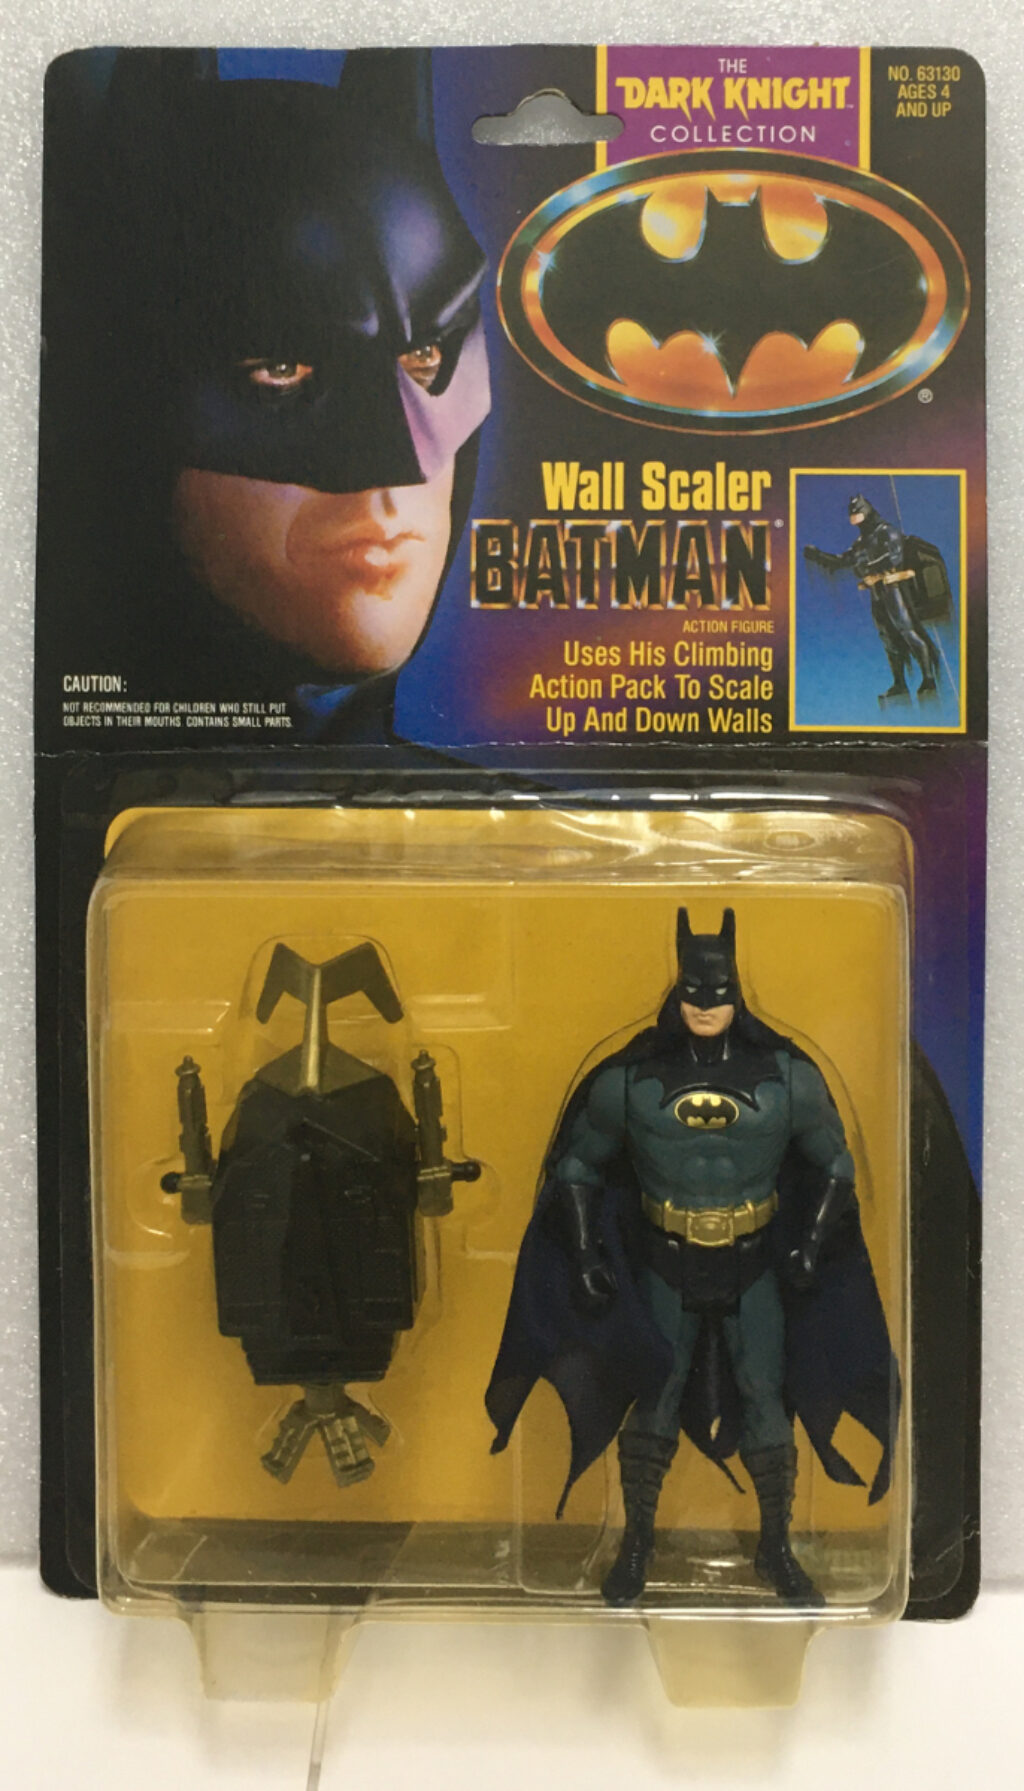 kenner dark knight collection wall scaler batman 1